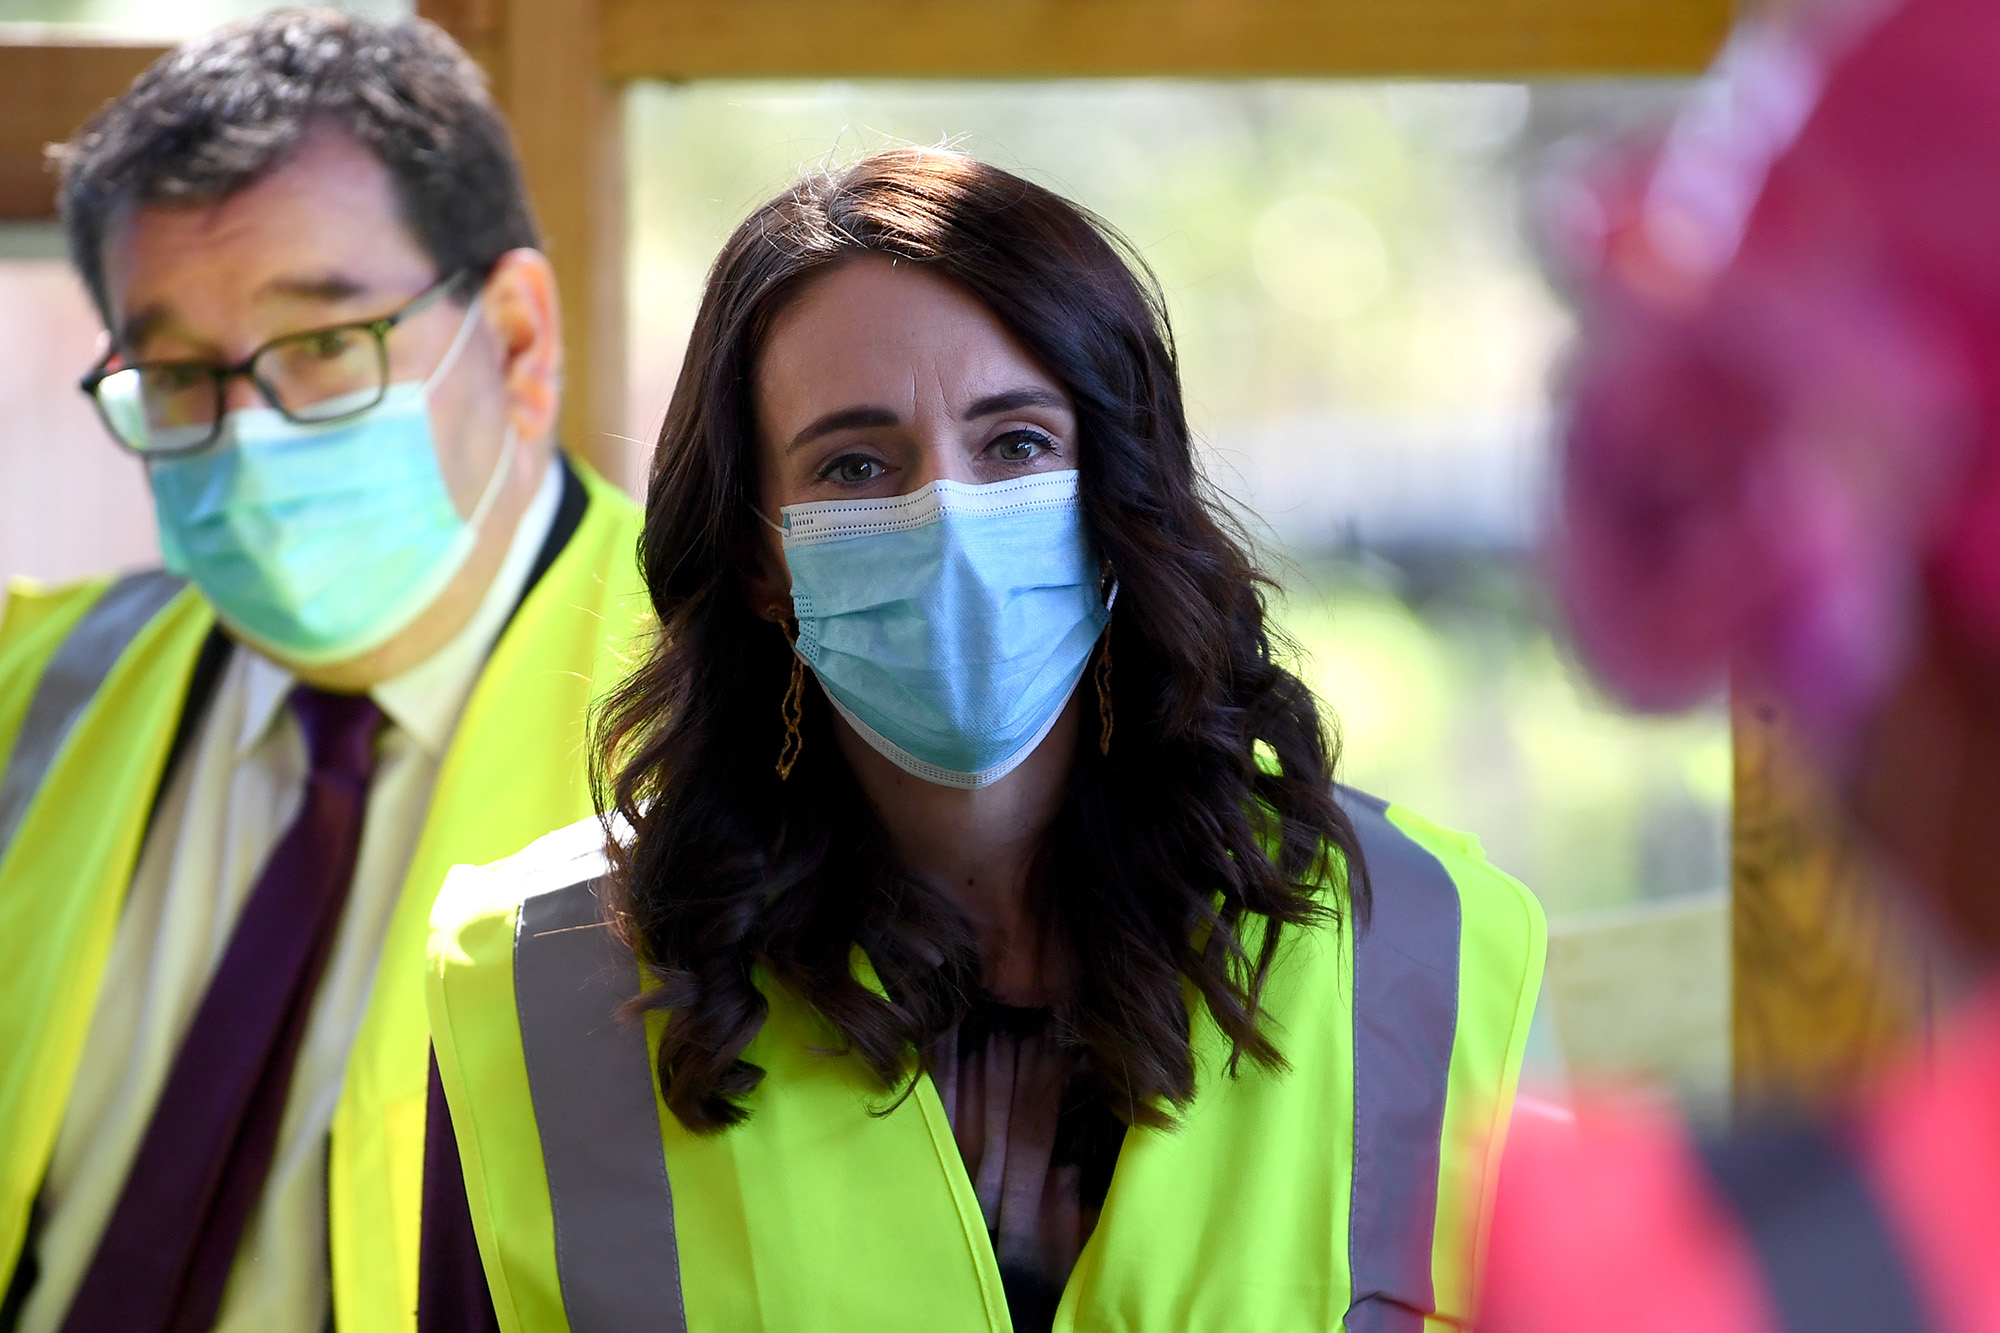 New Zealand Prime Minister Jacinda Ardern looks on at the Manukau Institute of Technology on September 3, in Auckland, New Zealand. Hannah Peters/Getty Images